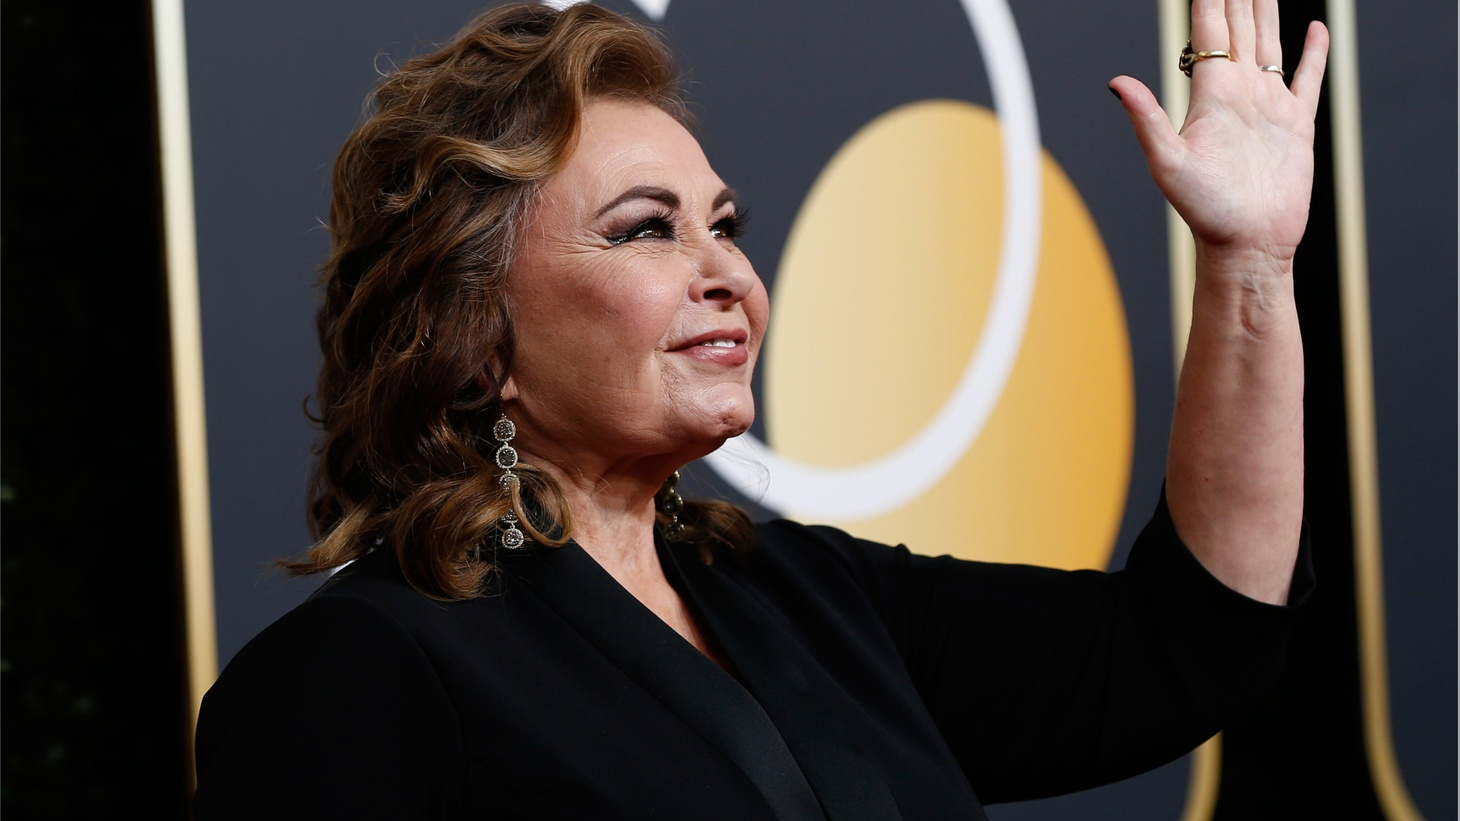 Showrunner Roseanne Barr and character Roseanne Conner are both loud and volatile Trump supporters. Meanwhile, her sitcom sister Jackie opposes Trump. Does the show help bridge -- or deepen -- political divides?